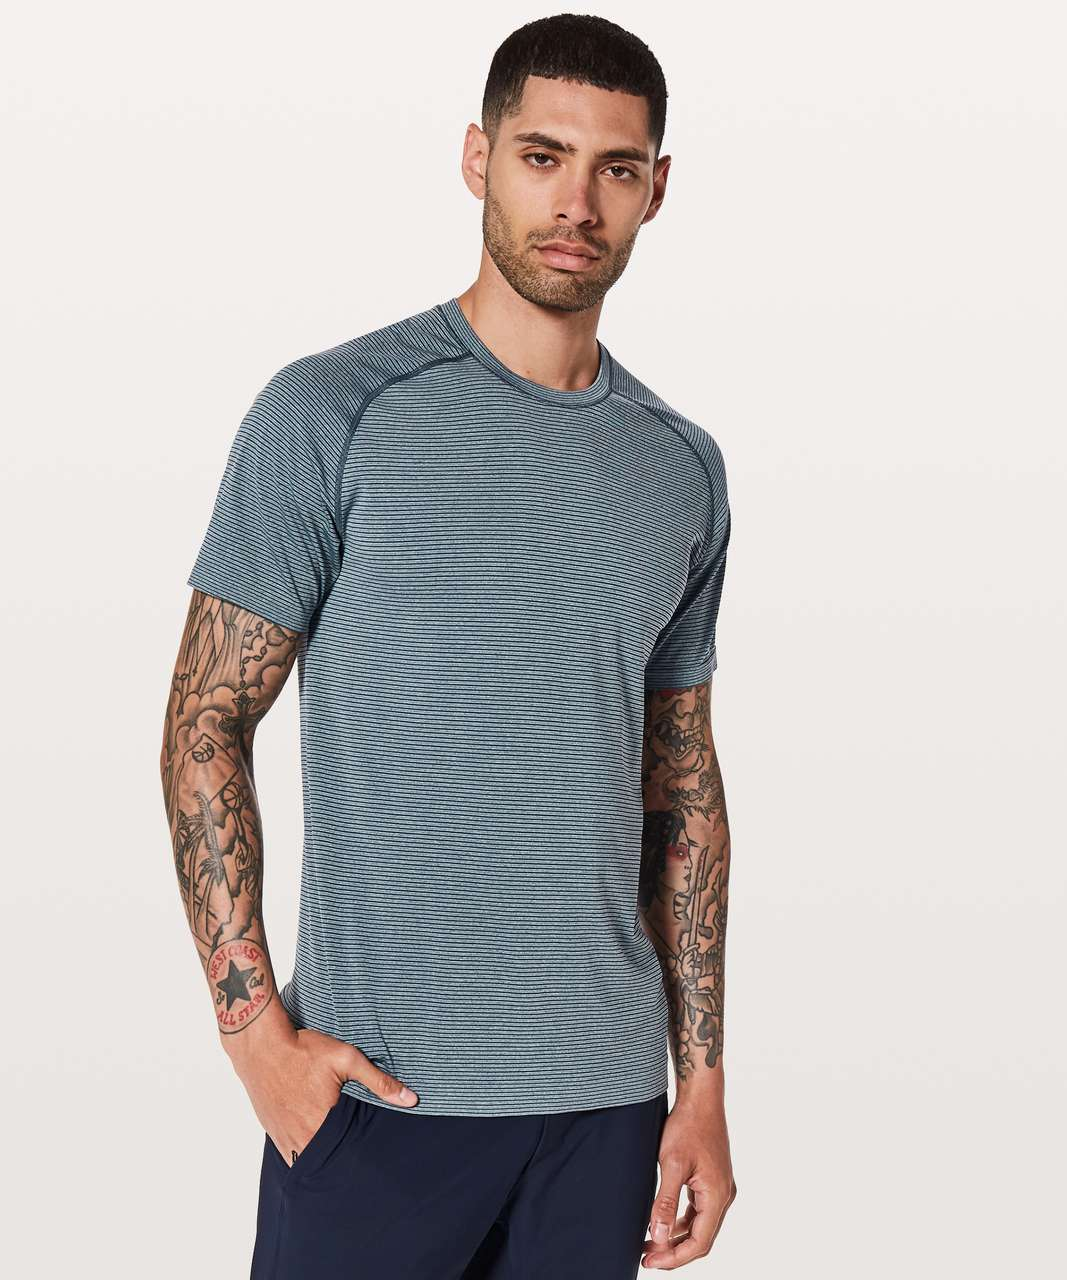 Lululemon Metal Vent Tech Short Sleeve - Mach Blue / White